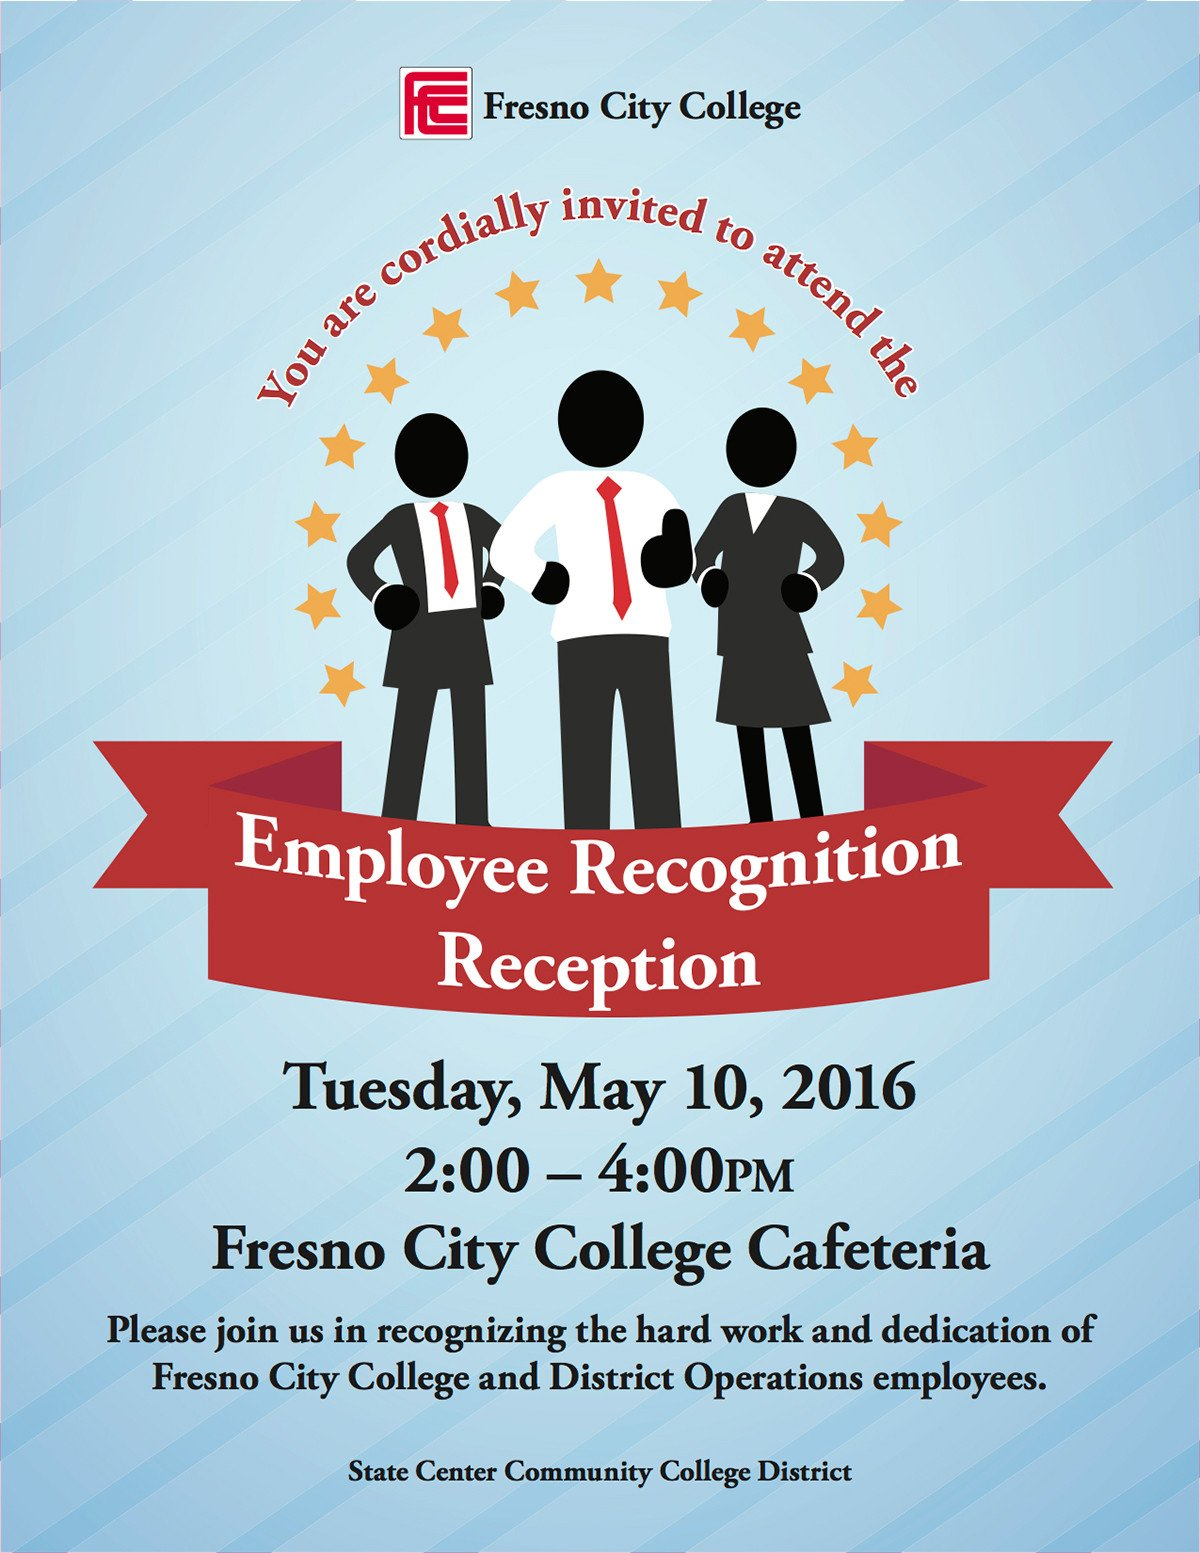 Employee Appreciation Day Flyer Template Employee Recognition Reception Flyer On Behance